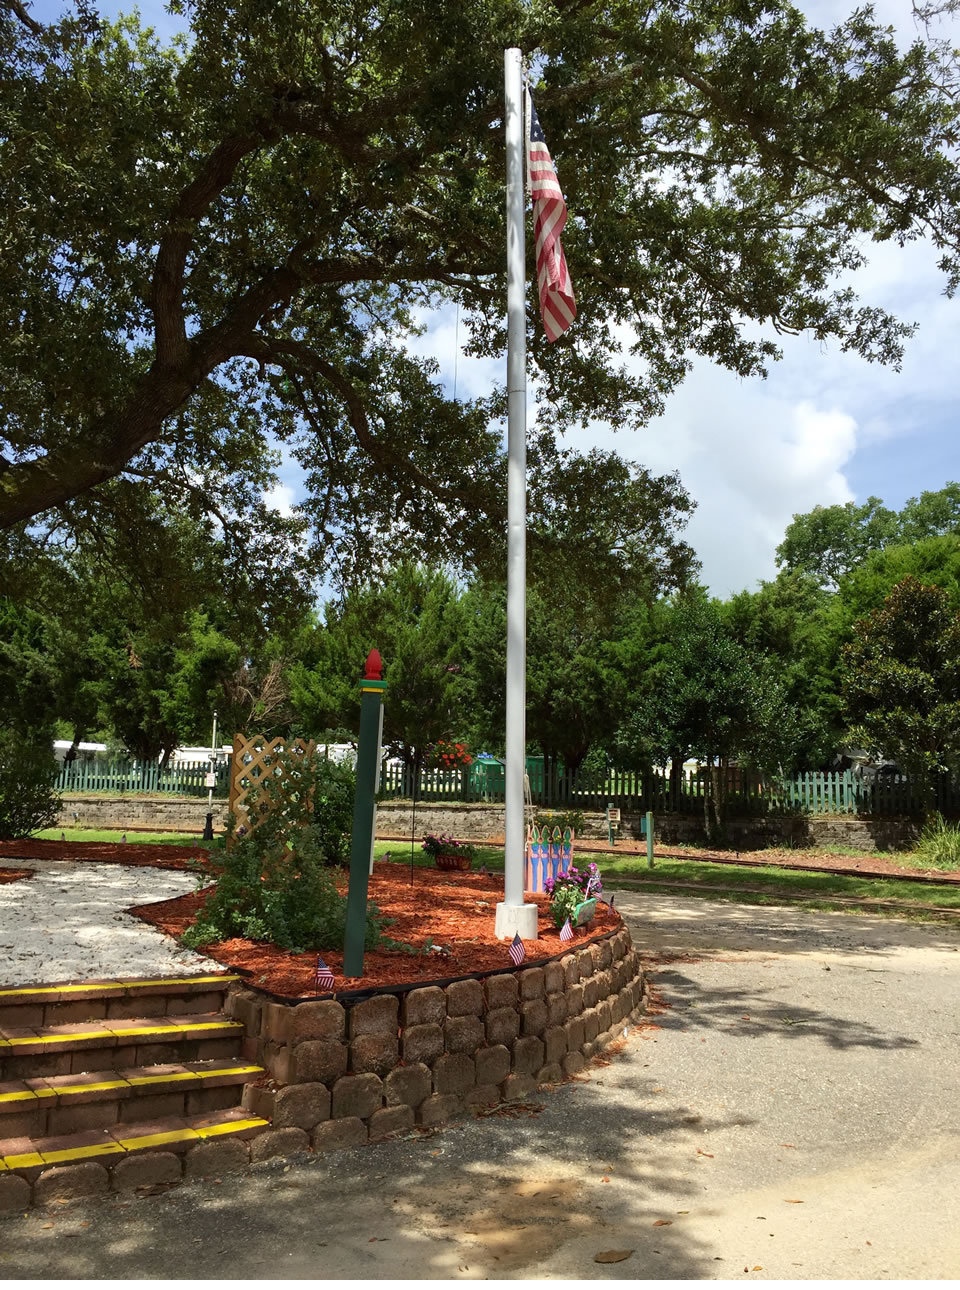 It's a popular landmark: The flagpole near The Main Entrance